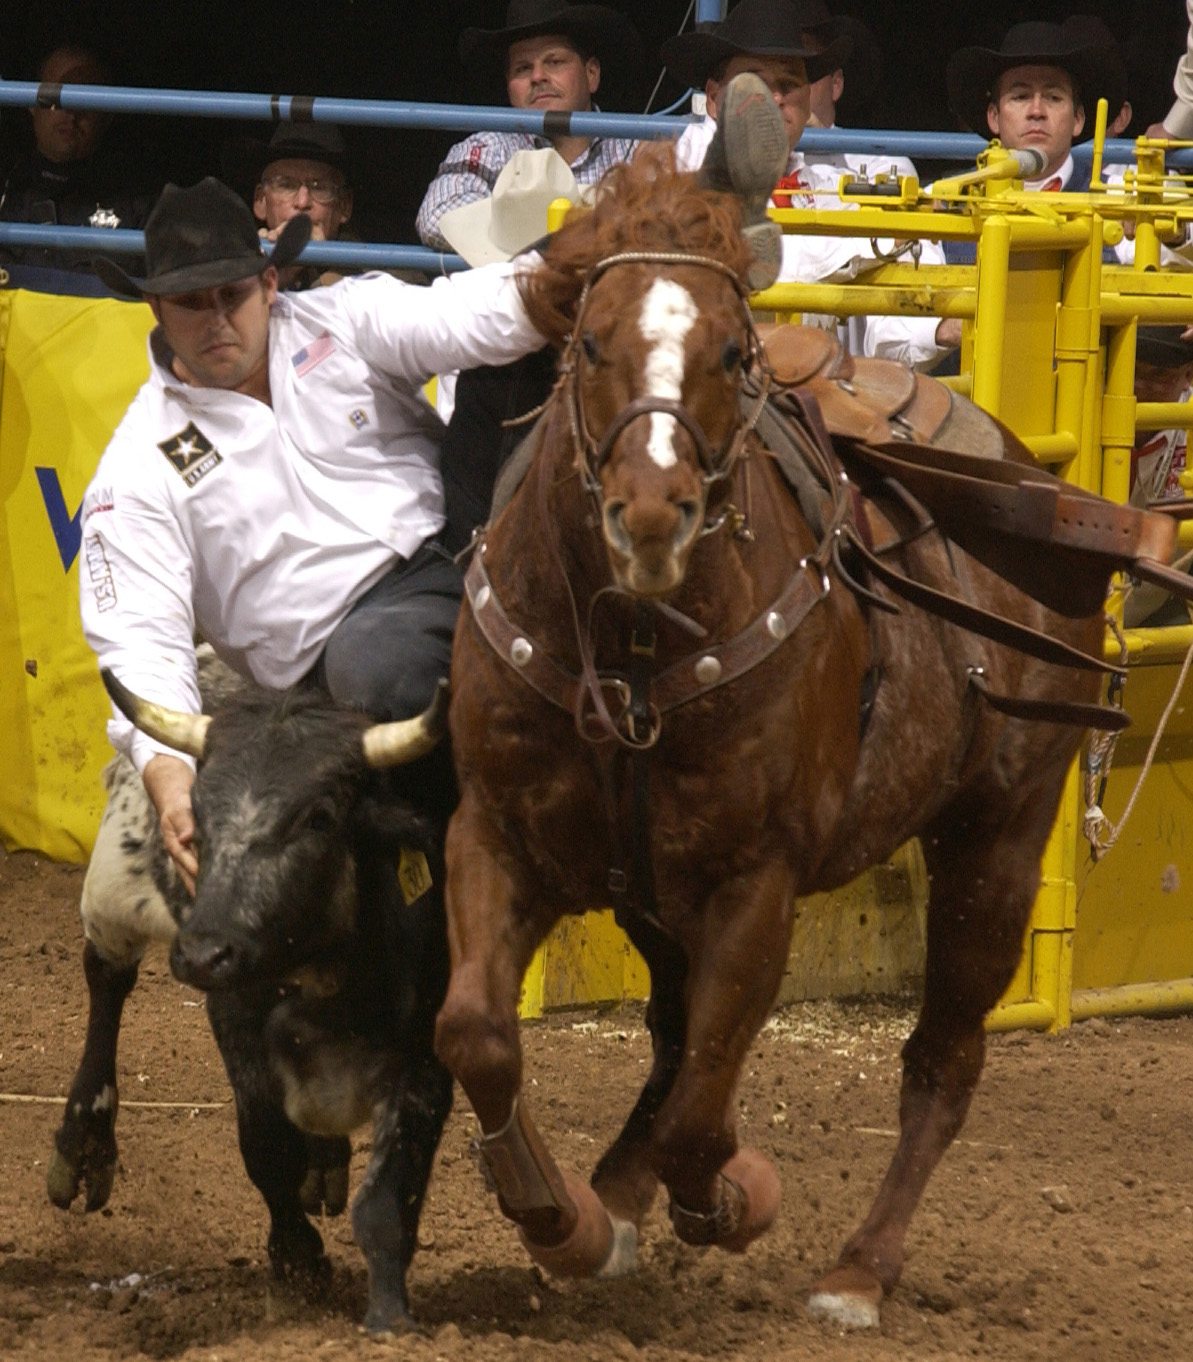 File:Rodeo3b2004-12-21.jpg - Wikipedia, the free encyclopedia